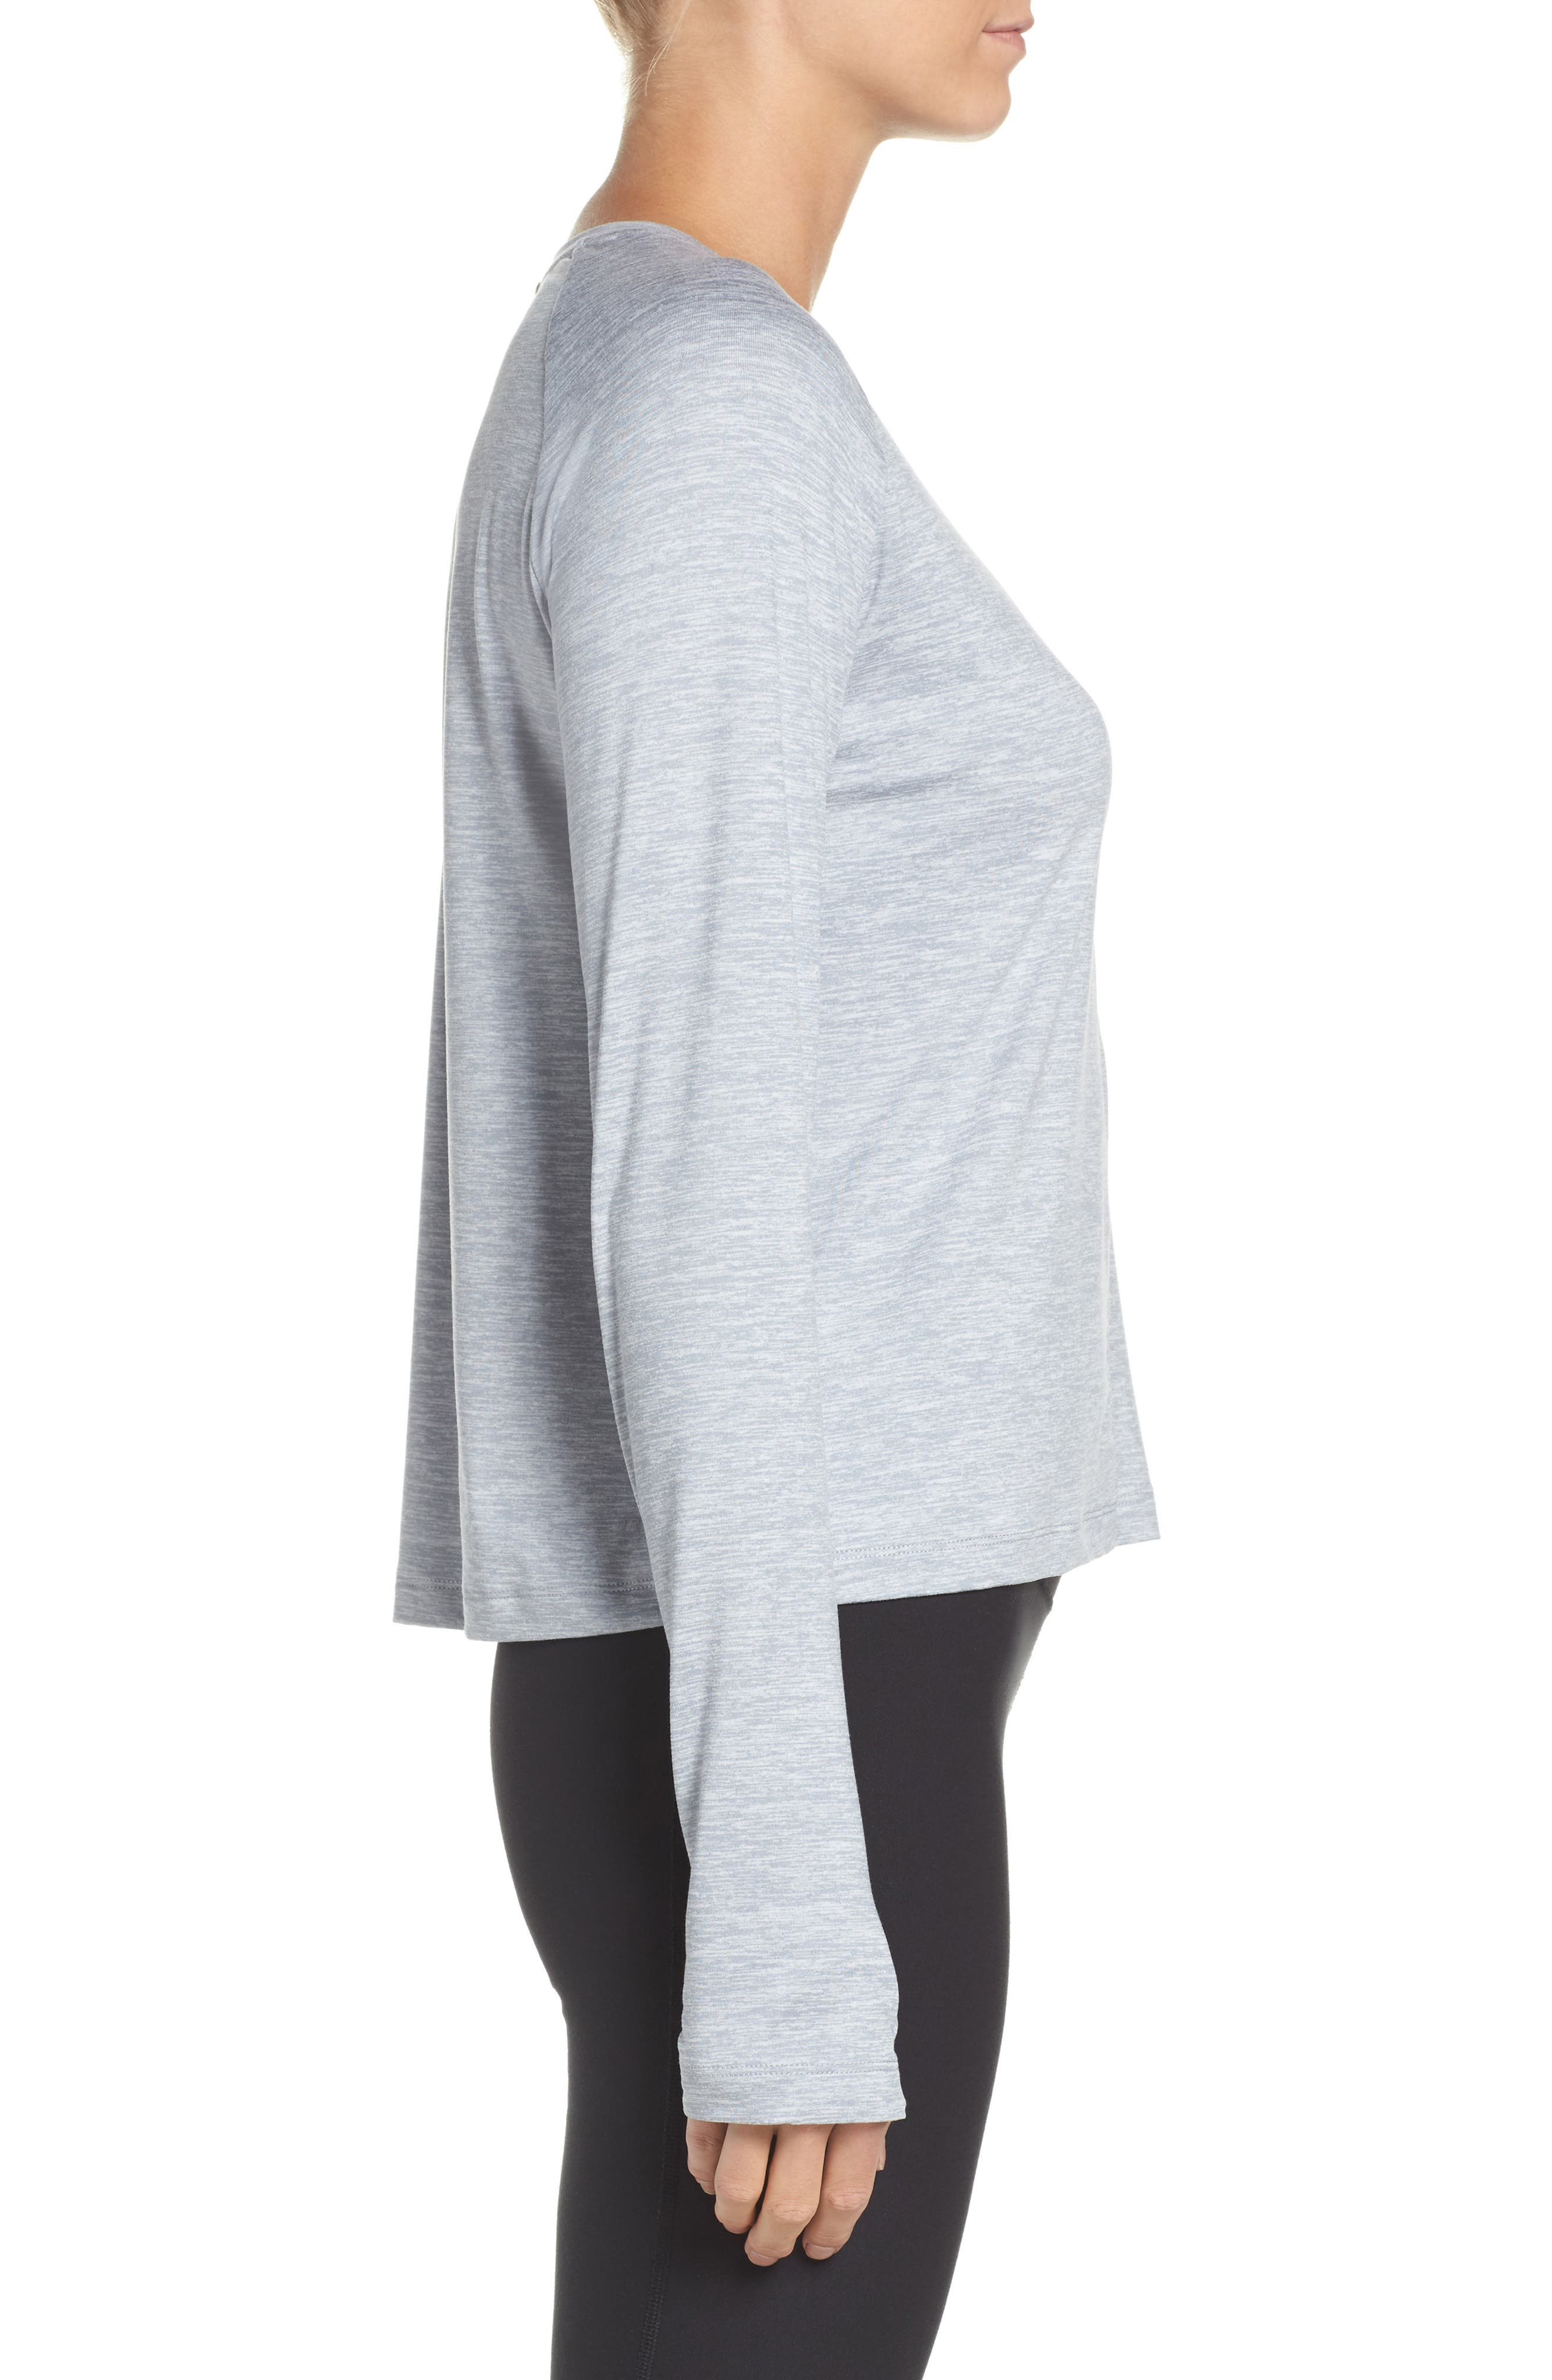 Dry Element Crop Top,                             Alternate thumbnail 3, color,                             Wolf Grey/ Heather